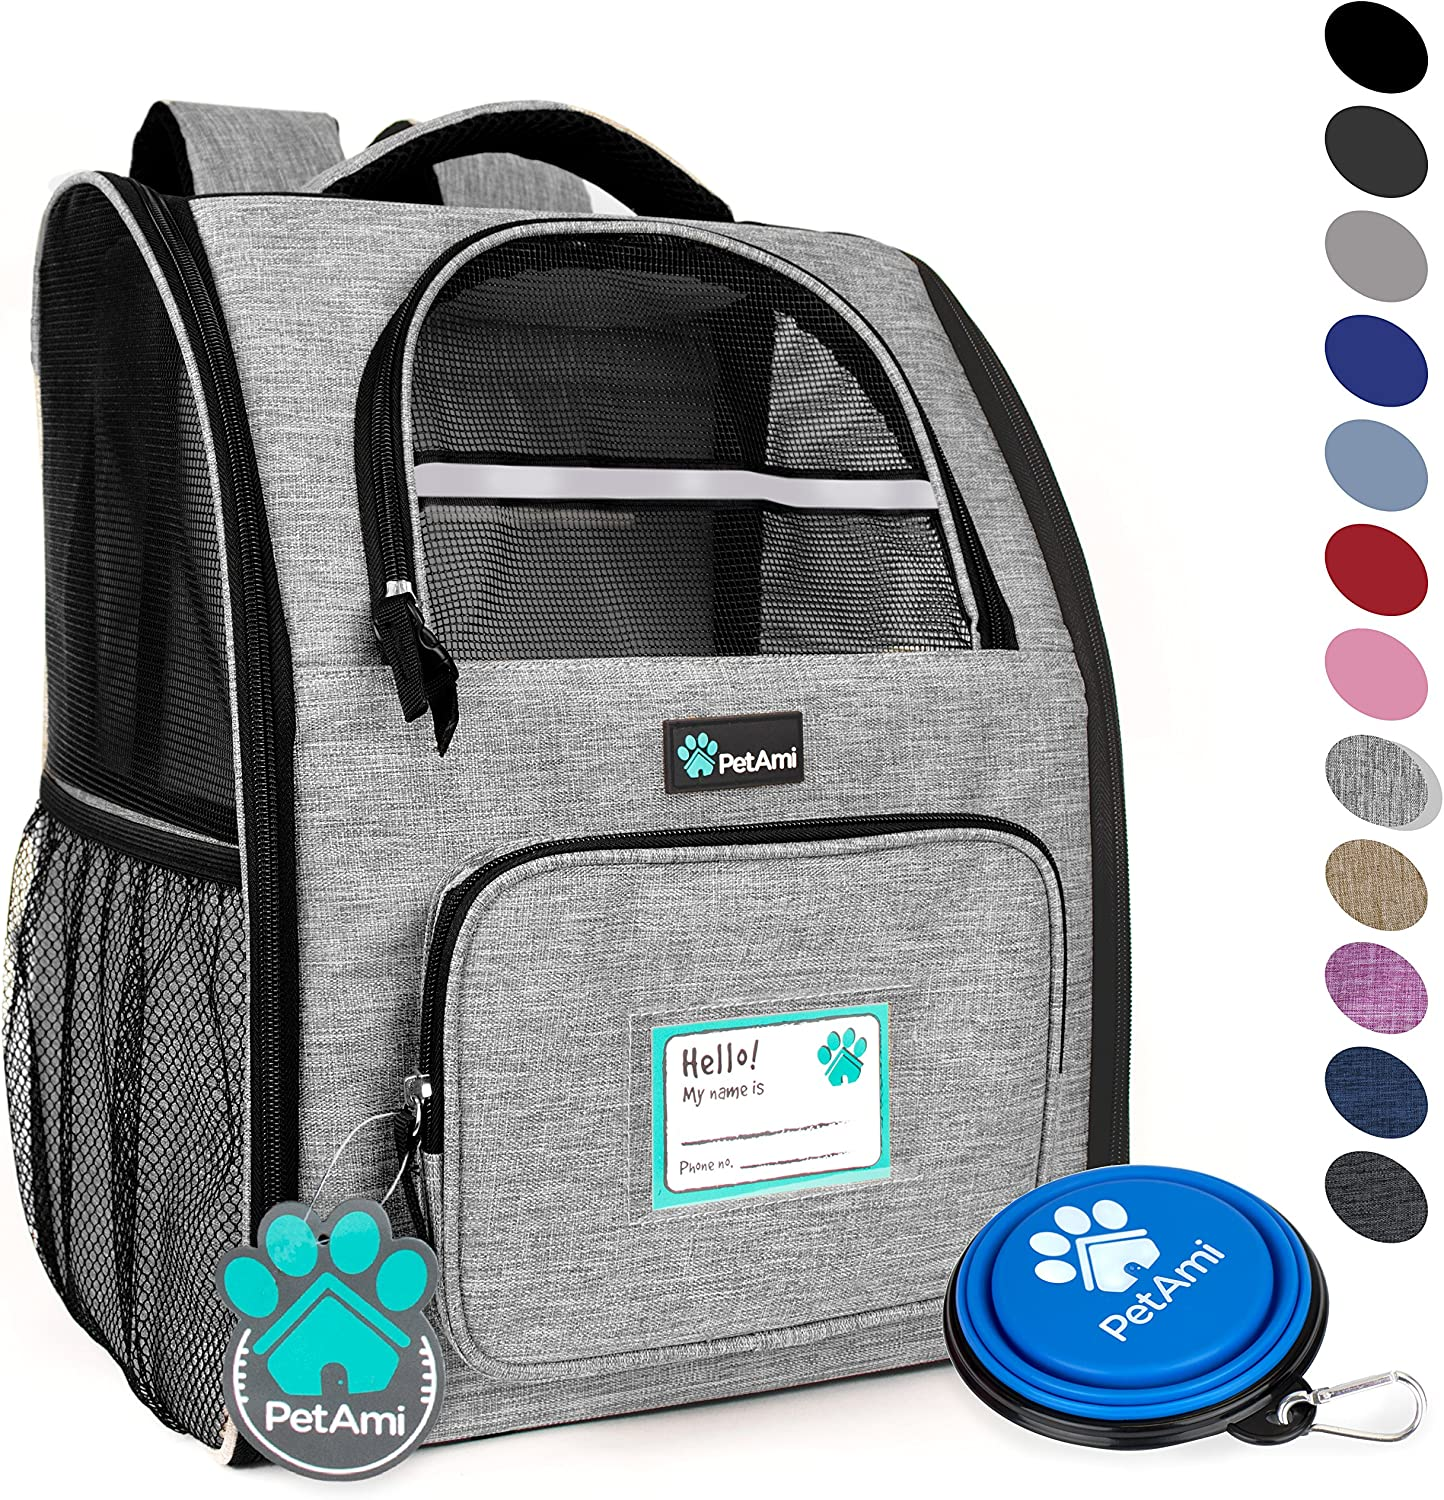 PetAmi Deluxe Pet Carrier